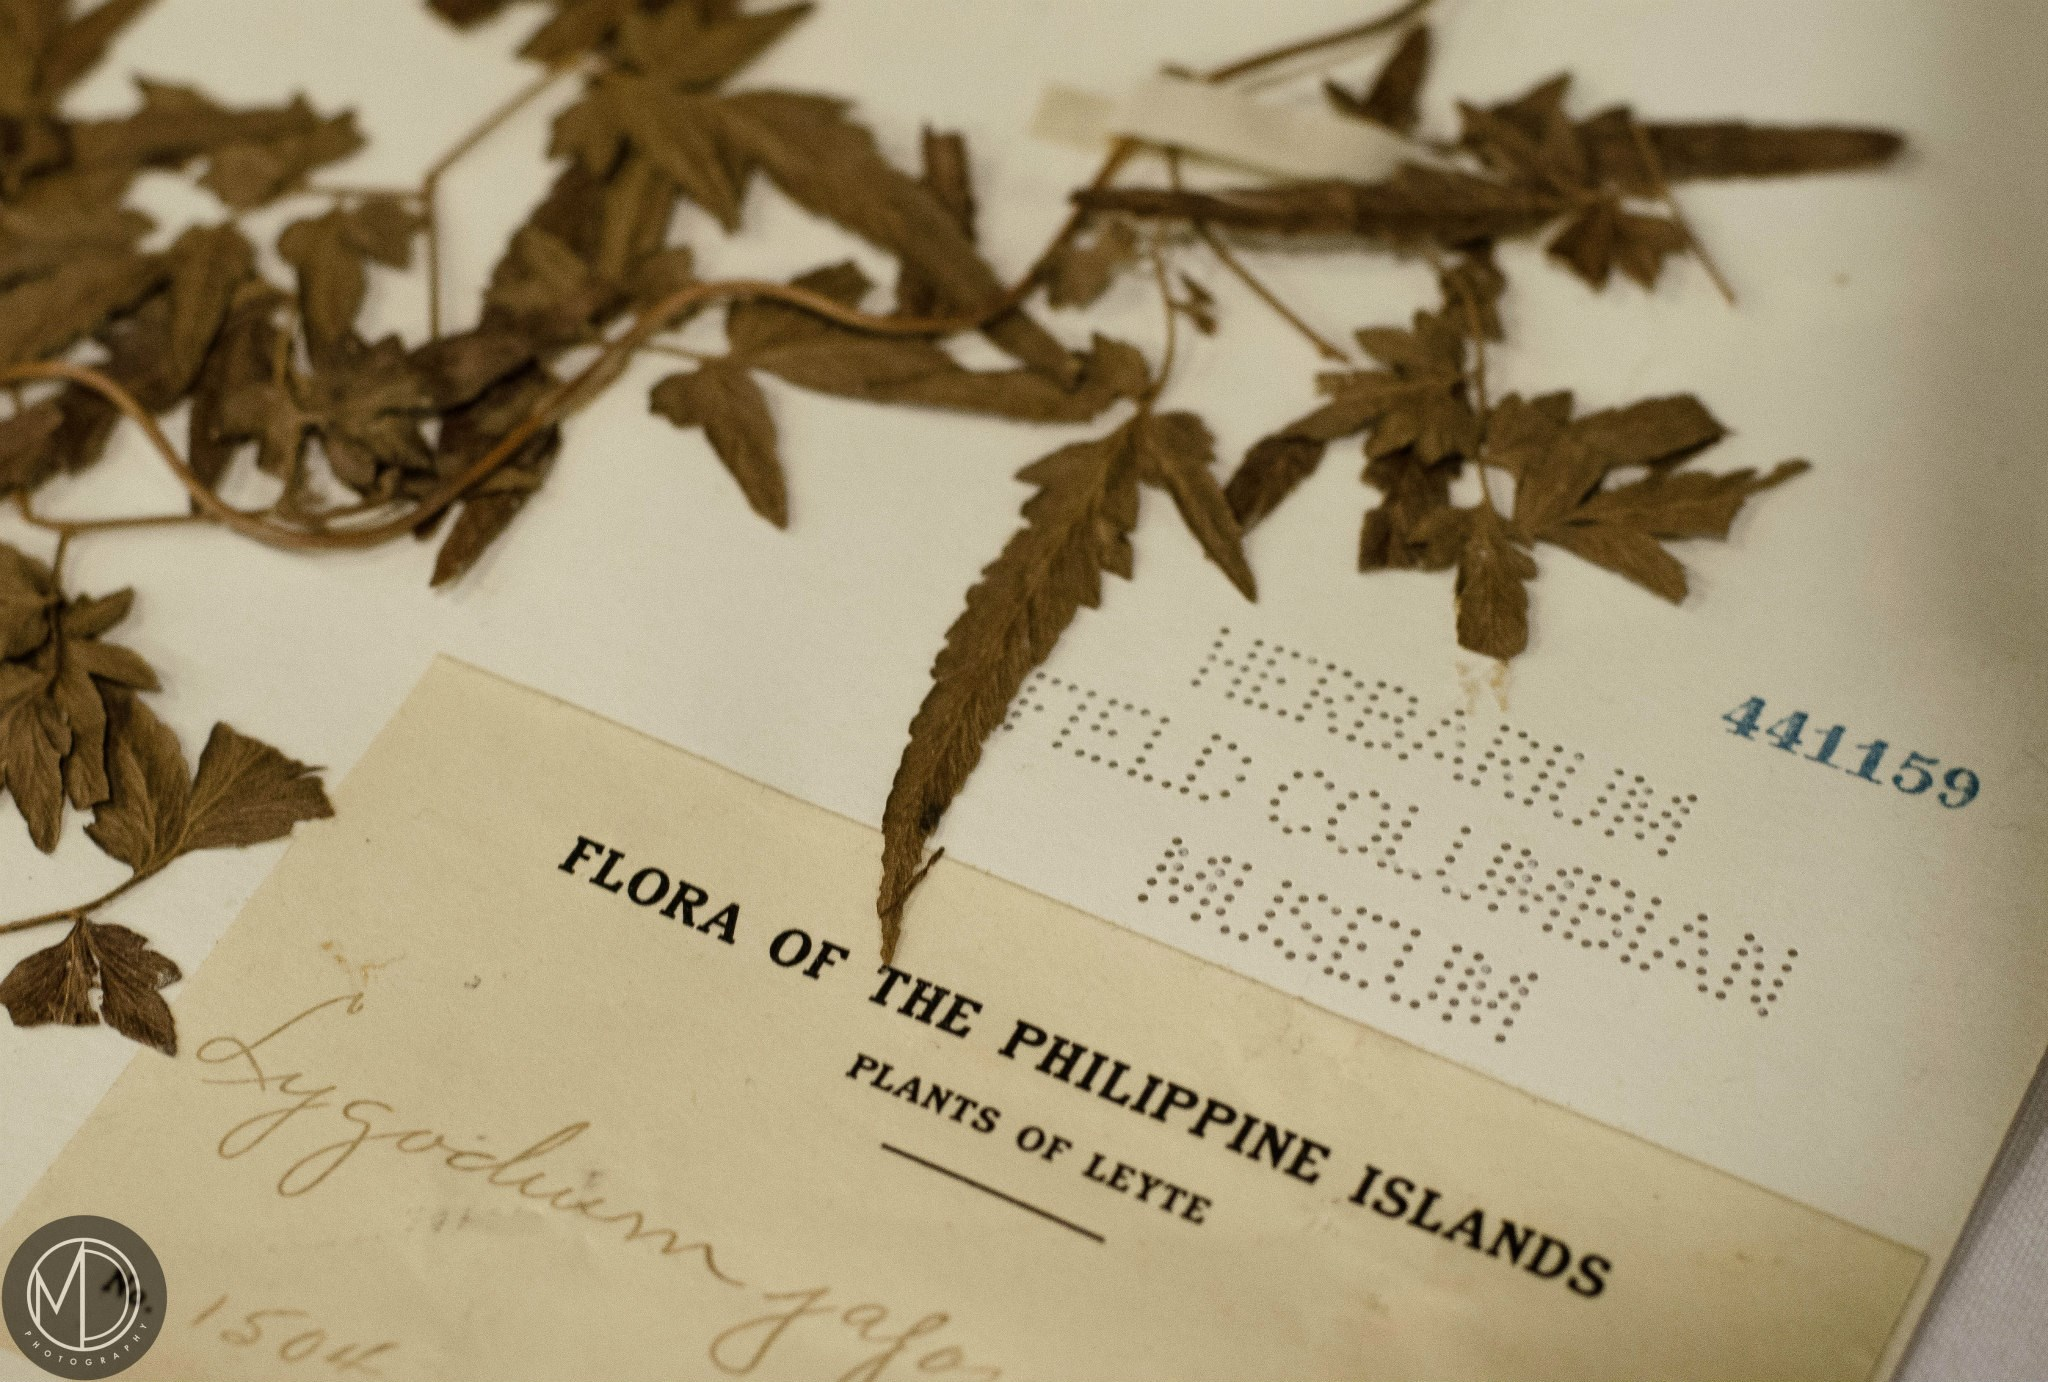 Close up of botanical specimens borrowed from the Botany collection for display.